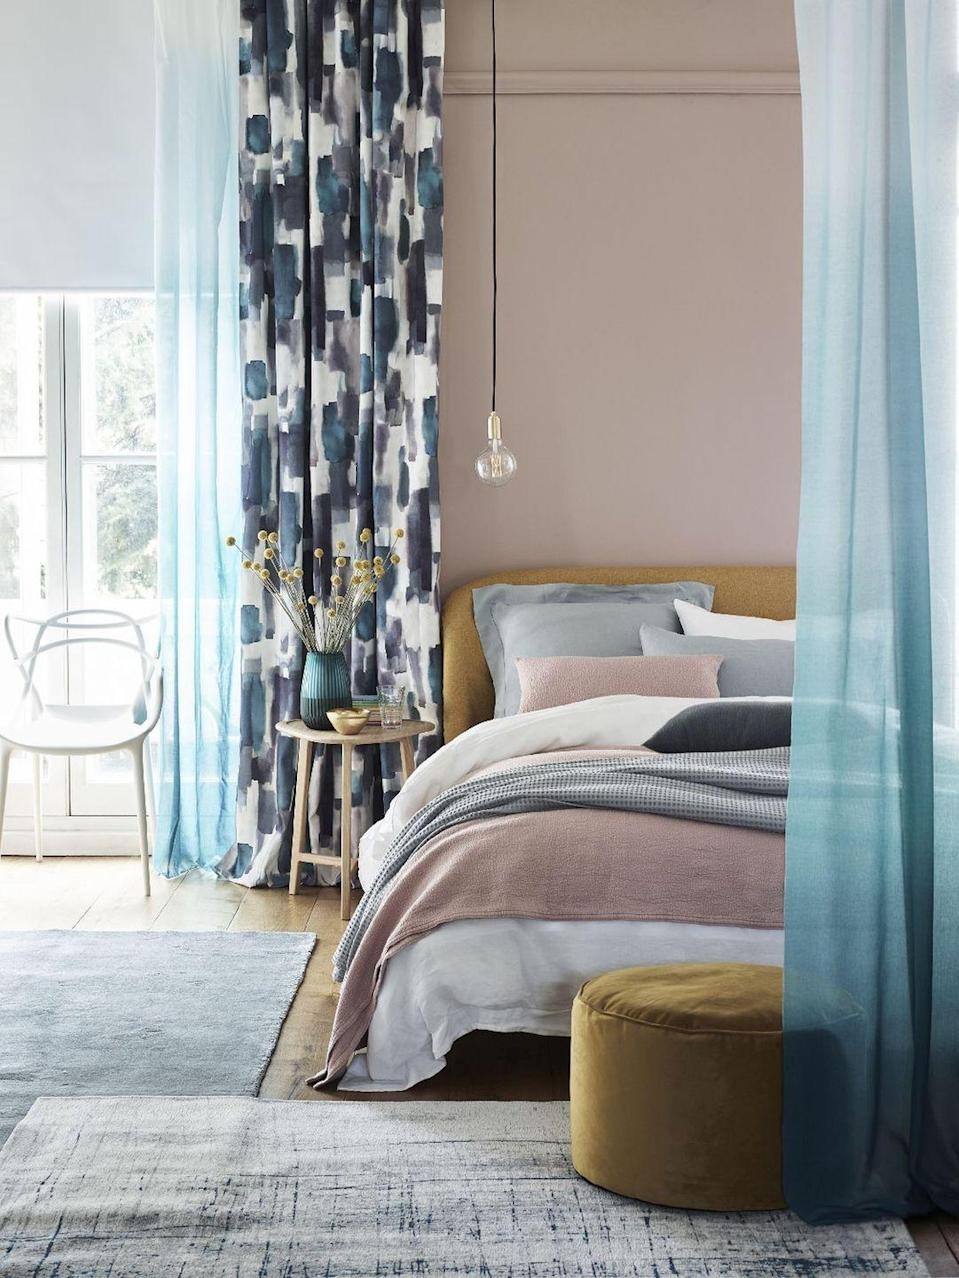 "<p><strong>Play around with feel-good textures and fabrics on your bed for a cosy, glamorous look. Not only will this give you the chance to get creative with colours, but it will create an incredibly grown-up feel. Your bedroom should be a sanctuary, after all. </strong></p><p>'Bedrooms, traditionally described as the private, rather than public, rooms in the home are now being shared more widely. Inspire others as to how you have created your sanctuary and sense of comfort through layered throws, blankets and textured accent pillows,' Pip Prinsloo, Partner & Head of Design at Home at John Lewis & Partners tells <strong>House Beautiful UK</strong>. </p><p><strong>Pictured</strong>: <a href=""https://go.redirectingat.com?id=127X1599956&url=https%3A%2F%2Fwww.johnlewis.com%2Fbrand%2Fhouse-by-john-lewis%2F_%2FN-1z14045&sref=https%3A%2F%2Fwww.housebeautiful.com%2Fuk%2Fdecorate%2Fbedroom%2Fg28786488%2Finstagram-bedroom%2F"" rel=""nofollow noopener"" target=""_blank"" data-ylk=""slk:John Lewis & Partners bedding, throws and cushions"" class=""link rapid-noclick-resp"">John Lewis & Partners bedding, throws and cushions</a> </p><p><a class=""link rapid-noclick-resp"" href=""https://go.redirectingat.com?id=127X1599956&url=https%3A%2F%2Fwww.johnlewis.com%2Fjohn-lewis-partners-show-wood-upholstered-bed-frame-double%2Fp3833216&sref=https%3A%2F%2Fwww.housebeautiful.com%2Fuk%2Fdecorate%2Fbedroom%2Fg28786488%2Finstagram-bedroom%2F"" rel=""nofollow noopener"" target=""_blank"" data-ylk=""slk:BUY NOW"">BUY NOW</a><br><br>We earn a commission for products purchased through some links in this article.<br></p>"